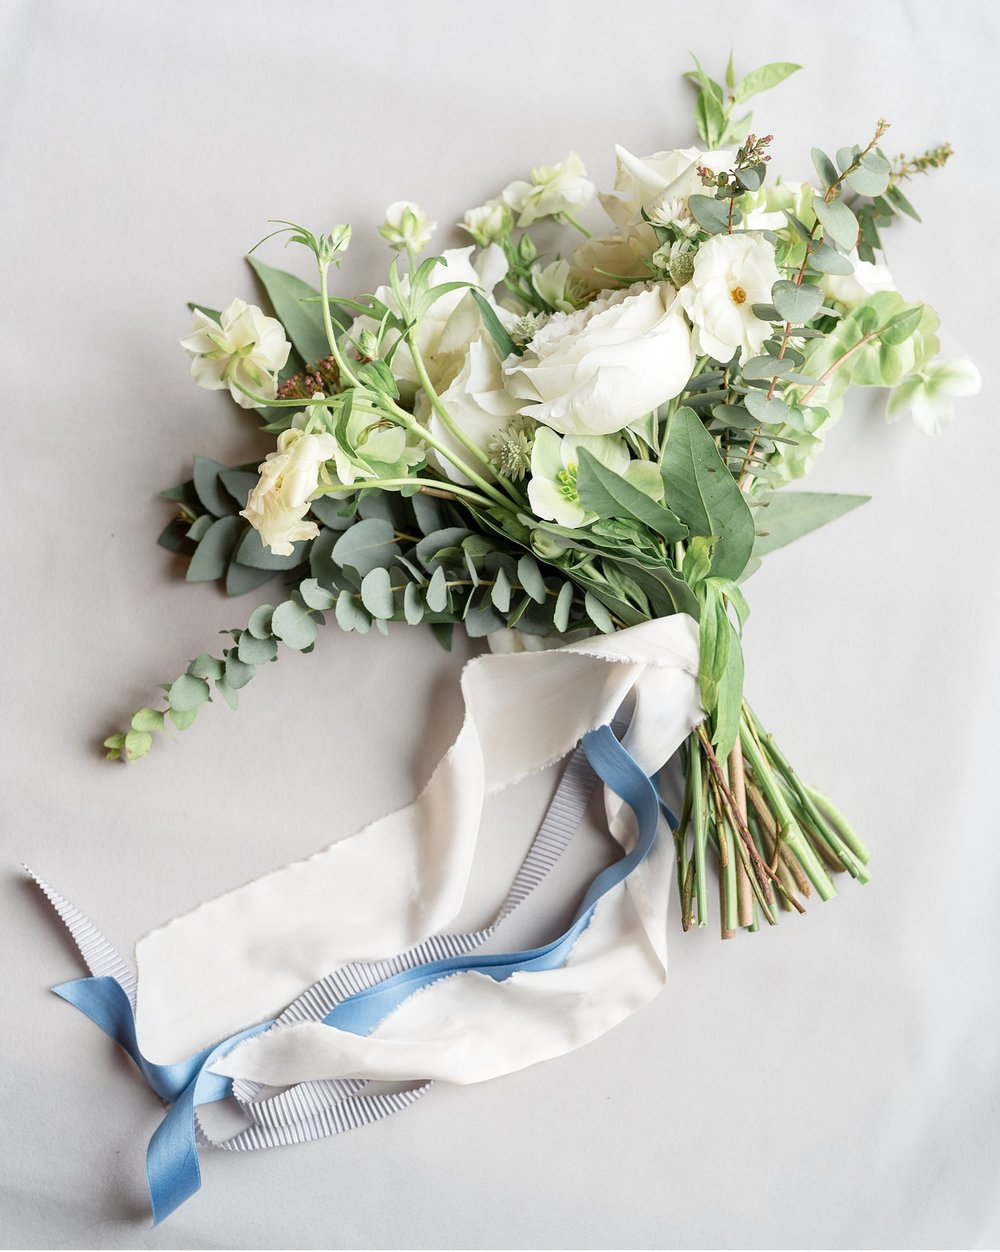 Beautiful floral display with ribbon